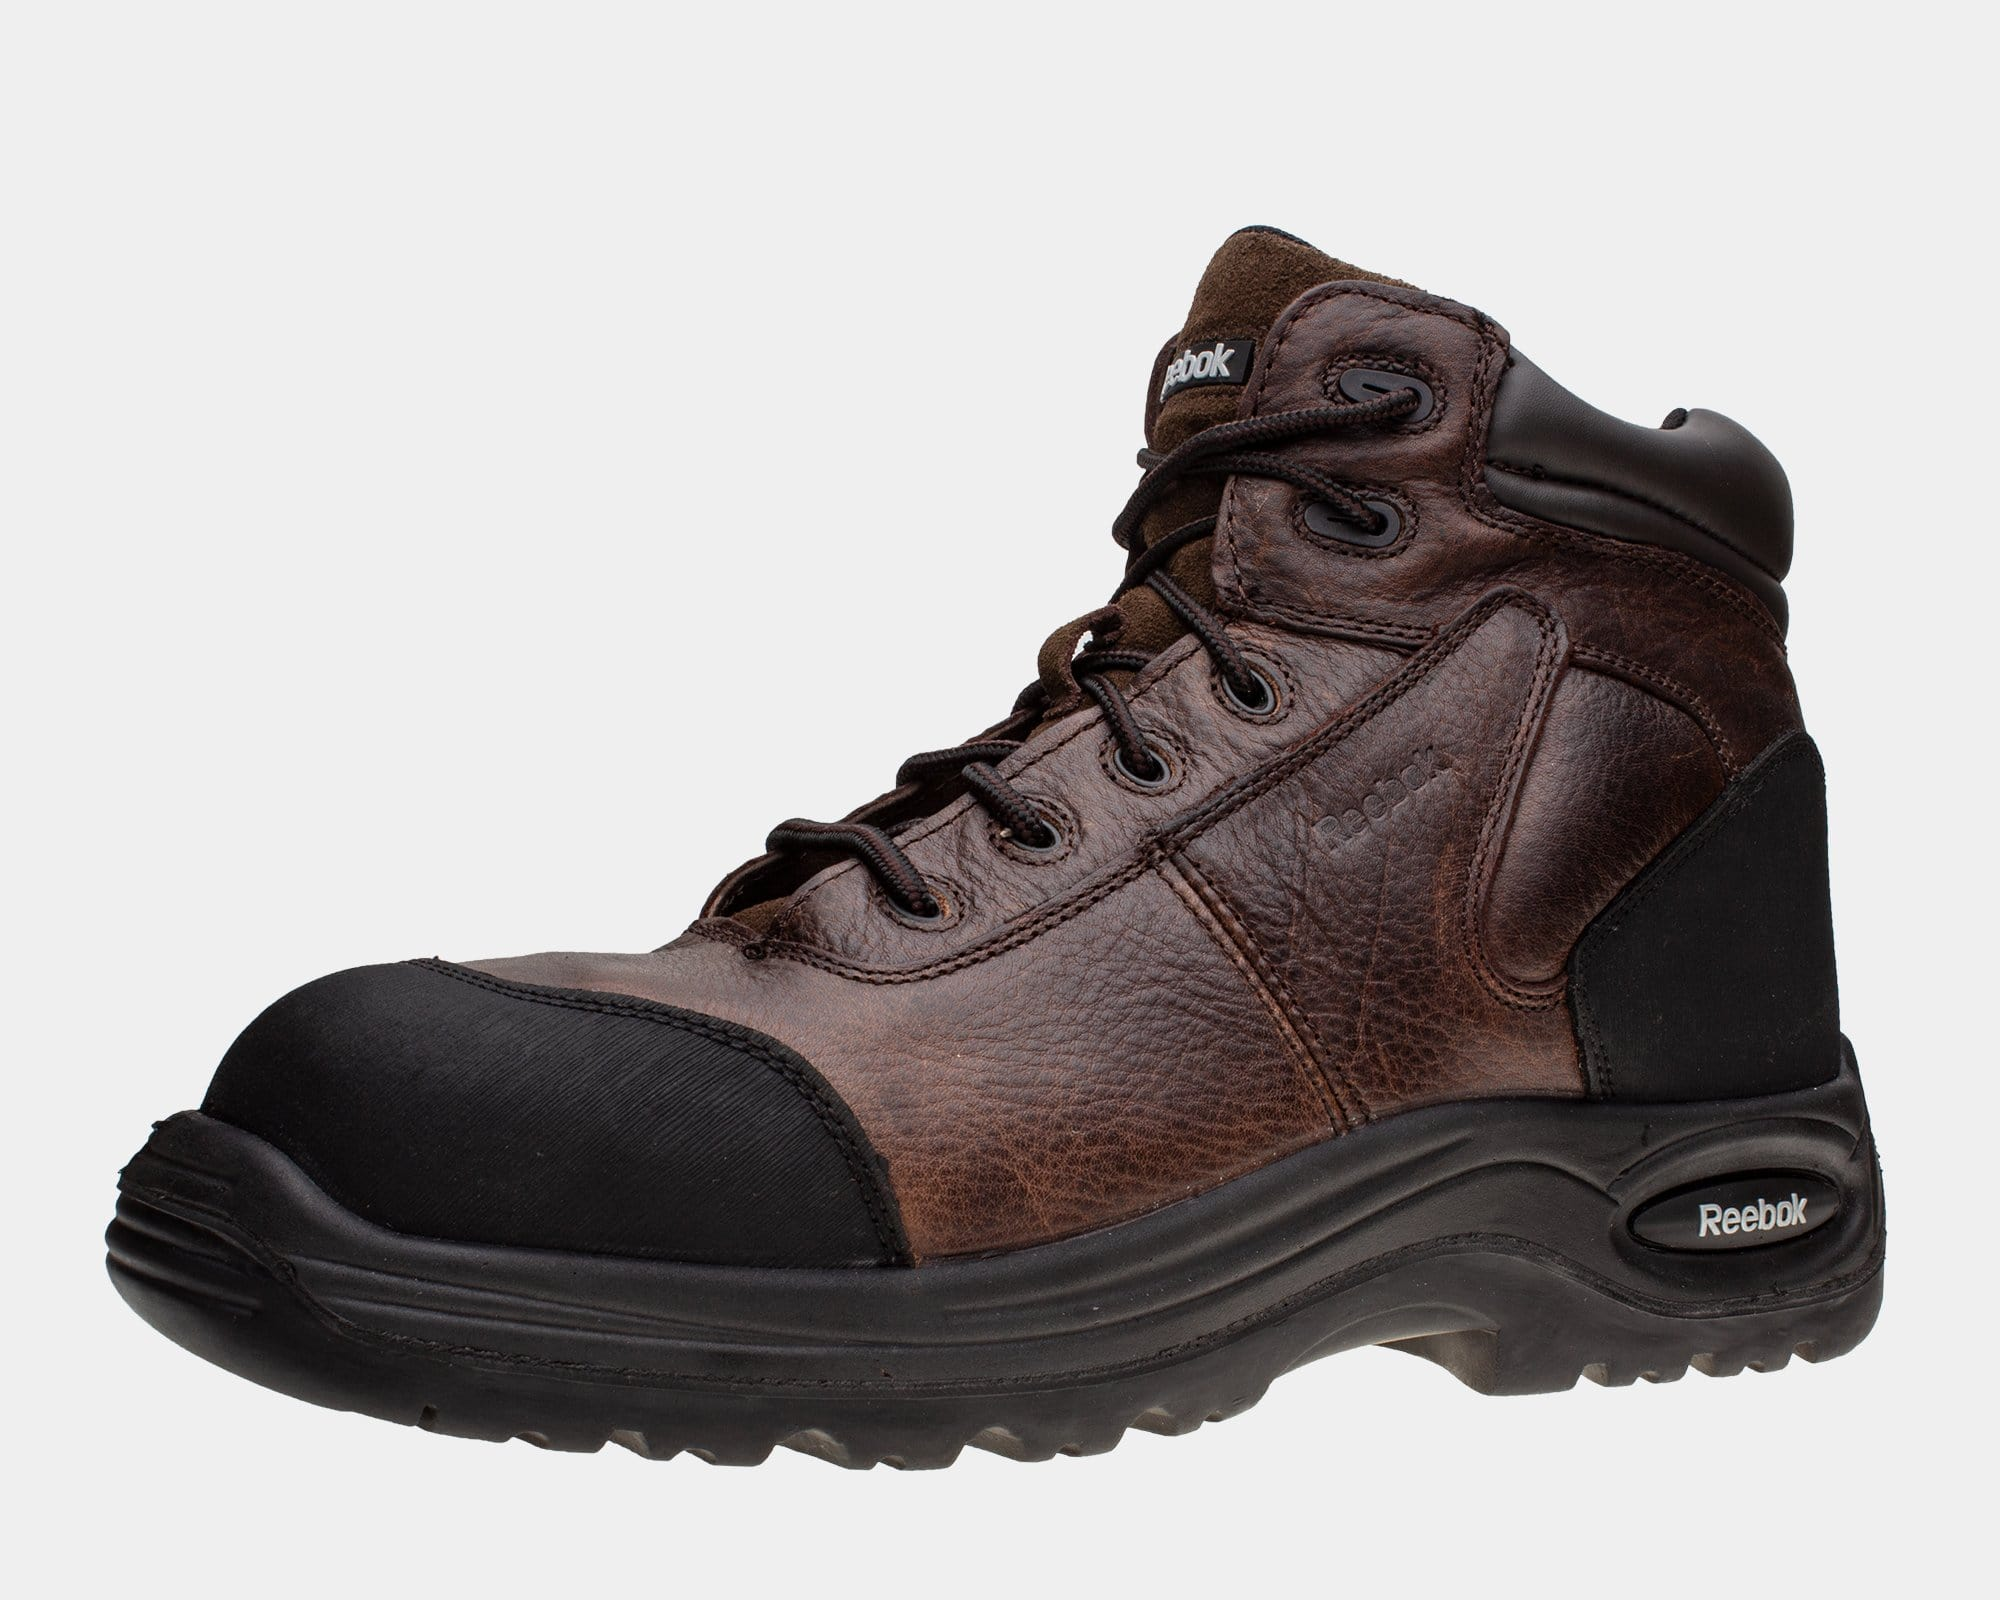 844360be140 6 Inch Sport Comp Toe Work Boot